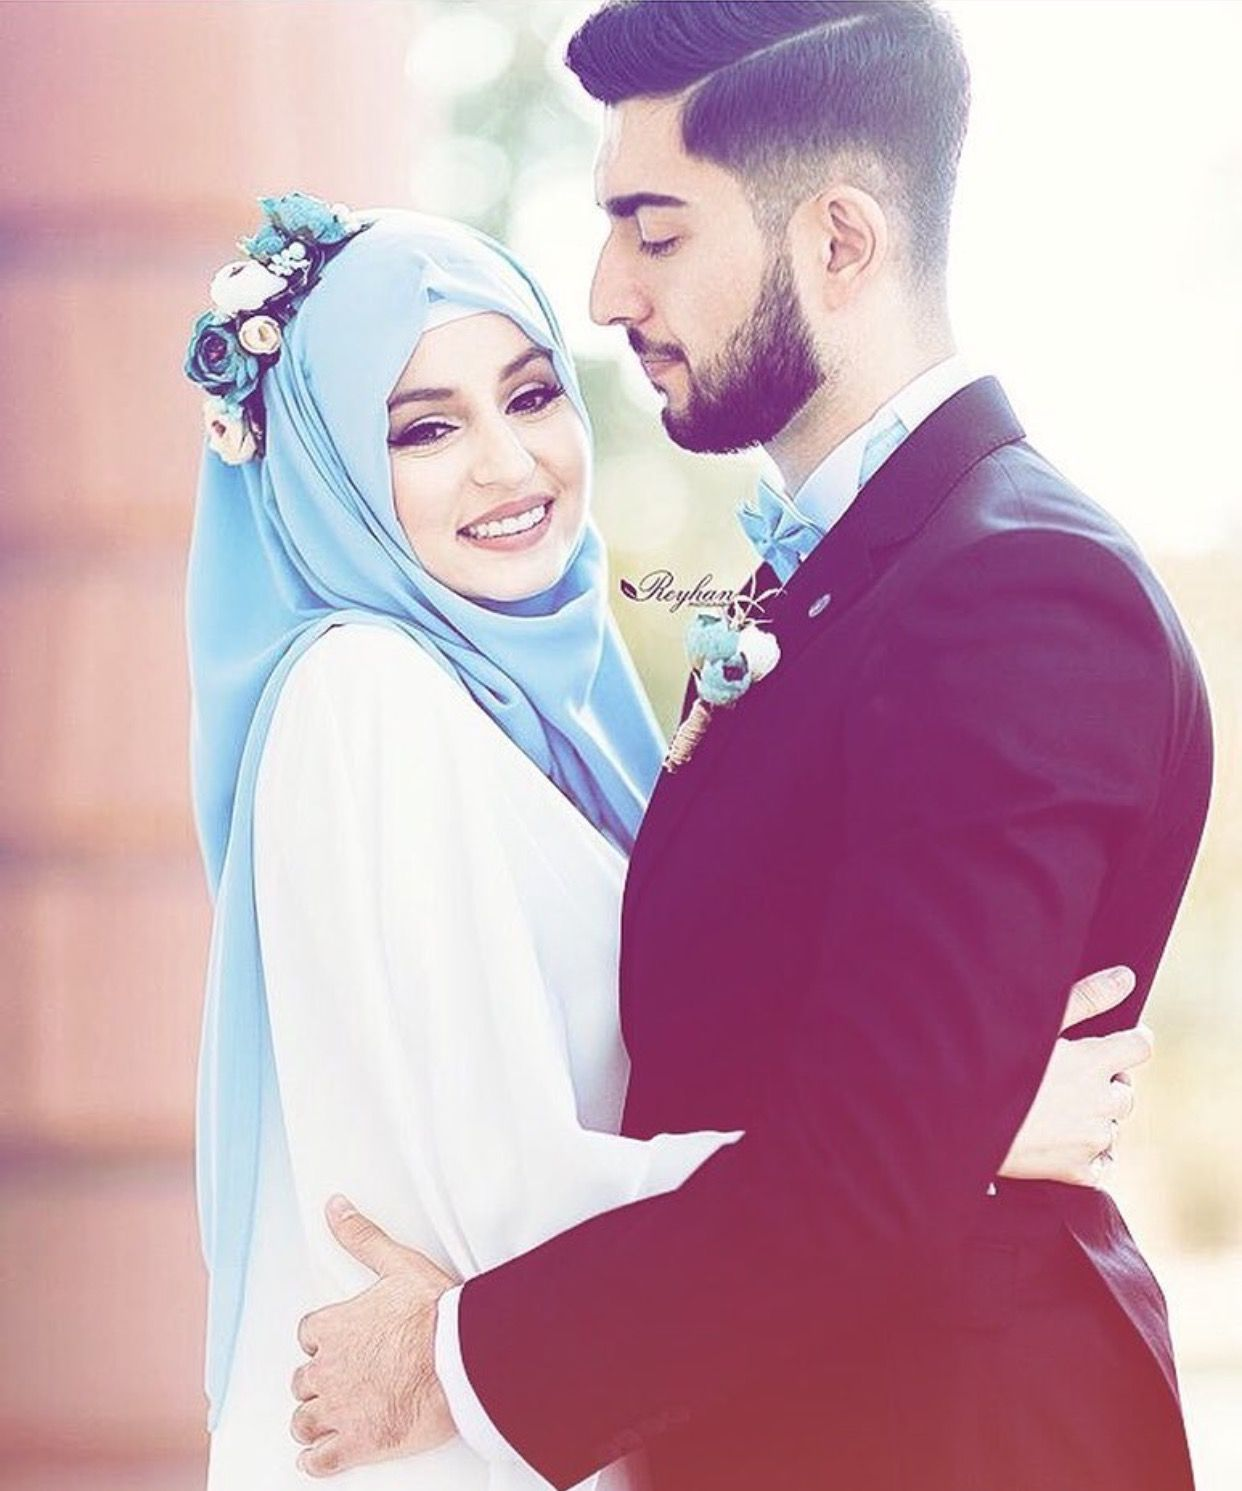 Featured image of post Profile Love Islamic Dp On mothers love islamic mother day quotes www islamic quotes images com islamic death quotes tumblr islamic quotes about terrorism islamic profile picture quotes islamic quotes family ties islamic quotes covers for fb islamic quotes and hadiths islamic quotes about money